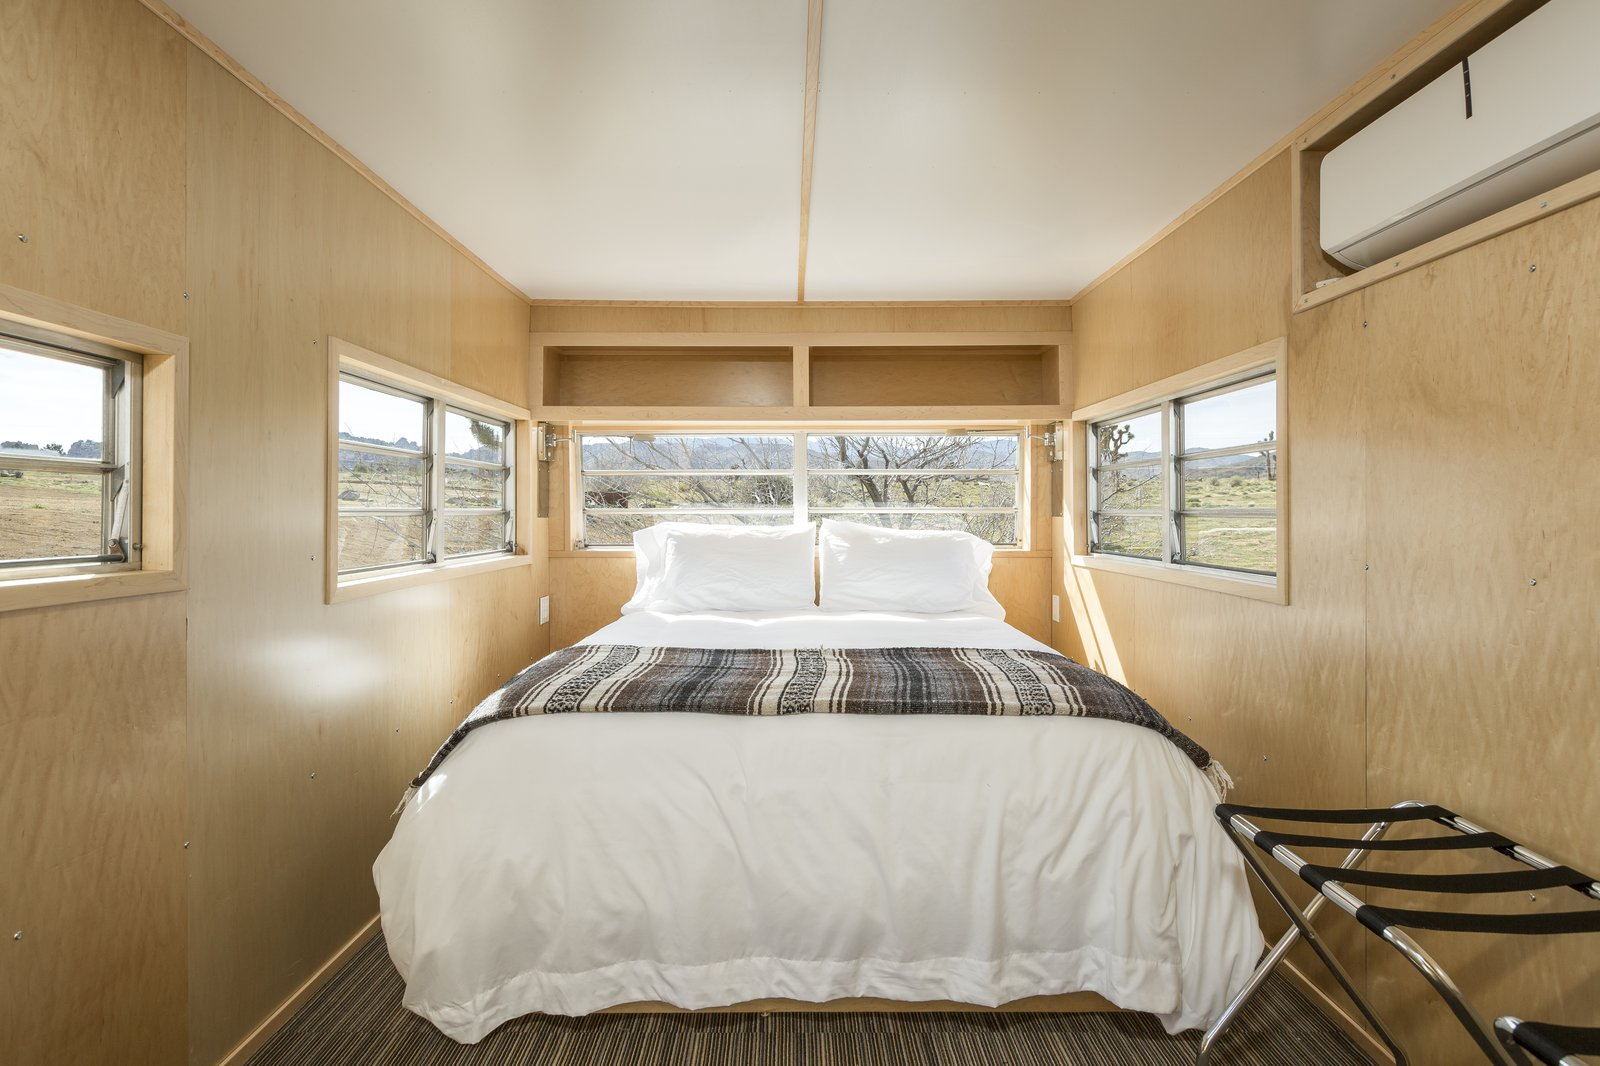 Interior of trailer.  The Rambler is now a clean, sleek retreat. Tagged: Bedroom, Bed, Wall Lighting, and Carpet Floor.  Photo 9 of 10 in This Modern Homestead With a Vintage Trailer Offers Adventure in California's High Desert